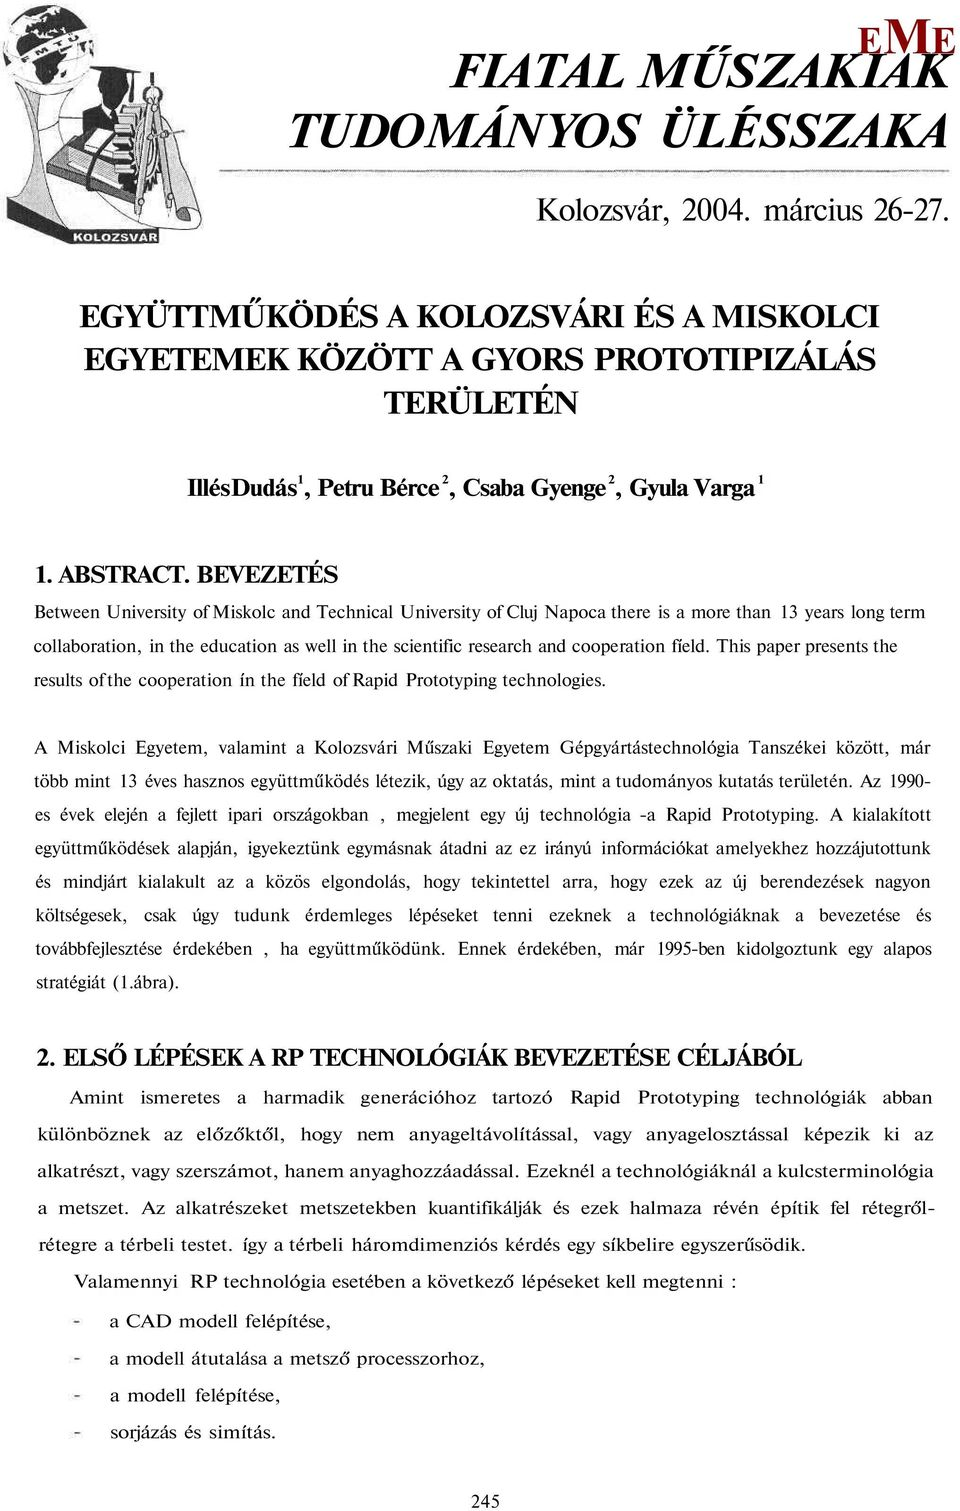 BVZTÉS Between University of iskolc and Technical University of Cluj Napoca there is a more than 13 years long term collaboration, in the education as well in the scientific research and cooperation